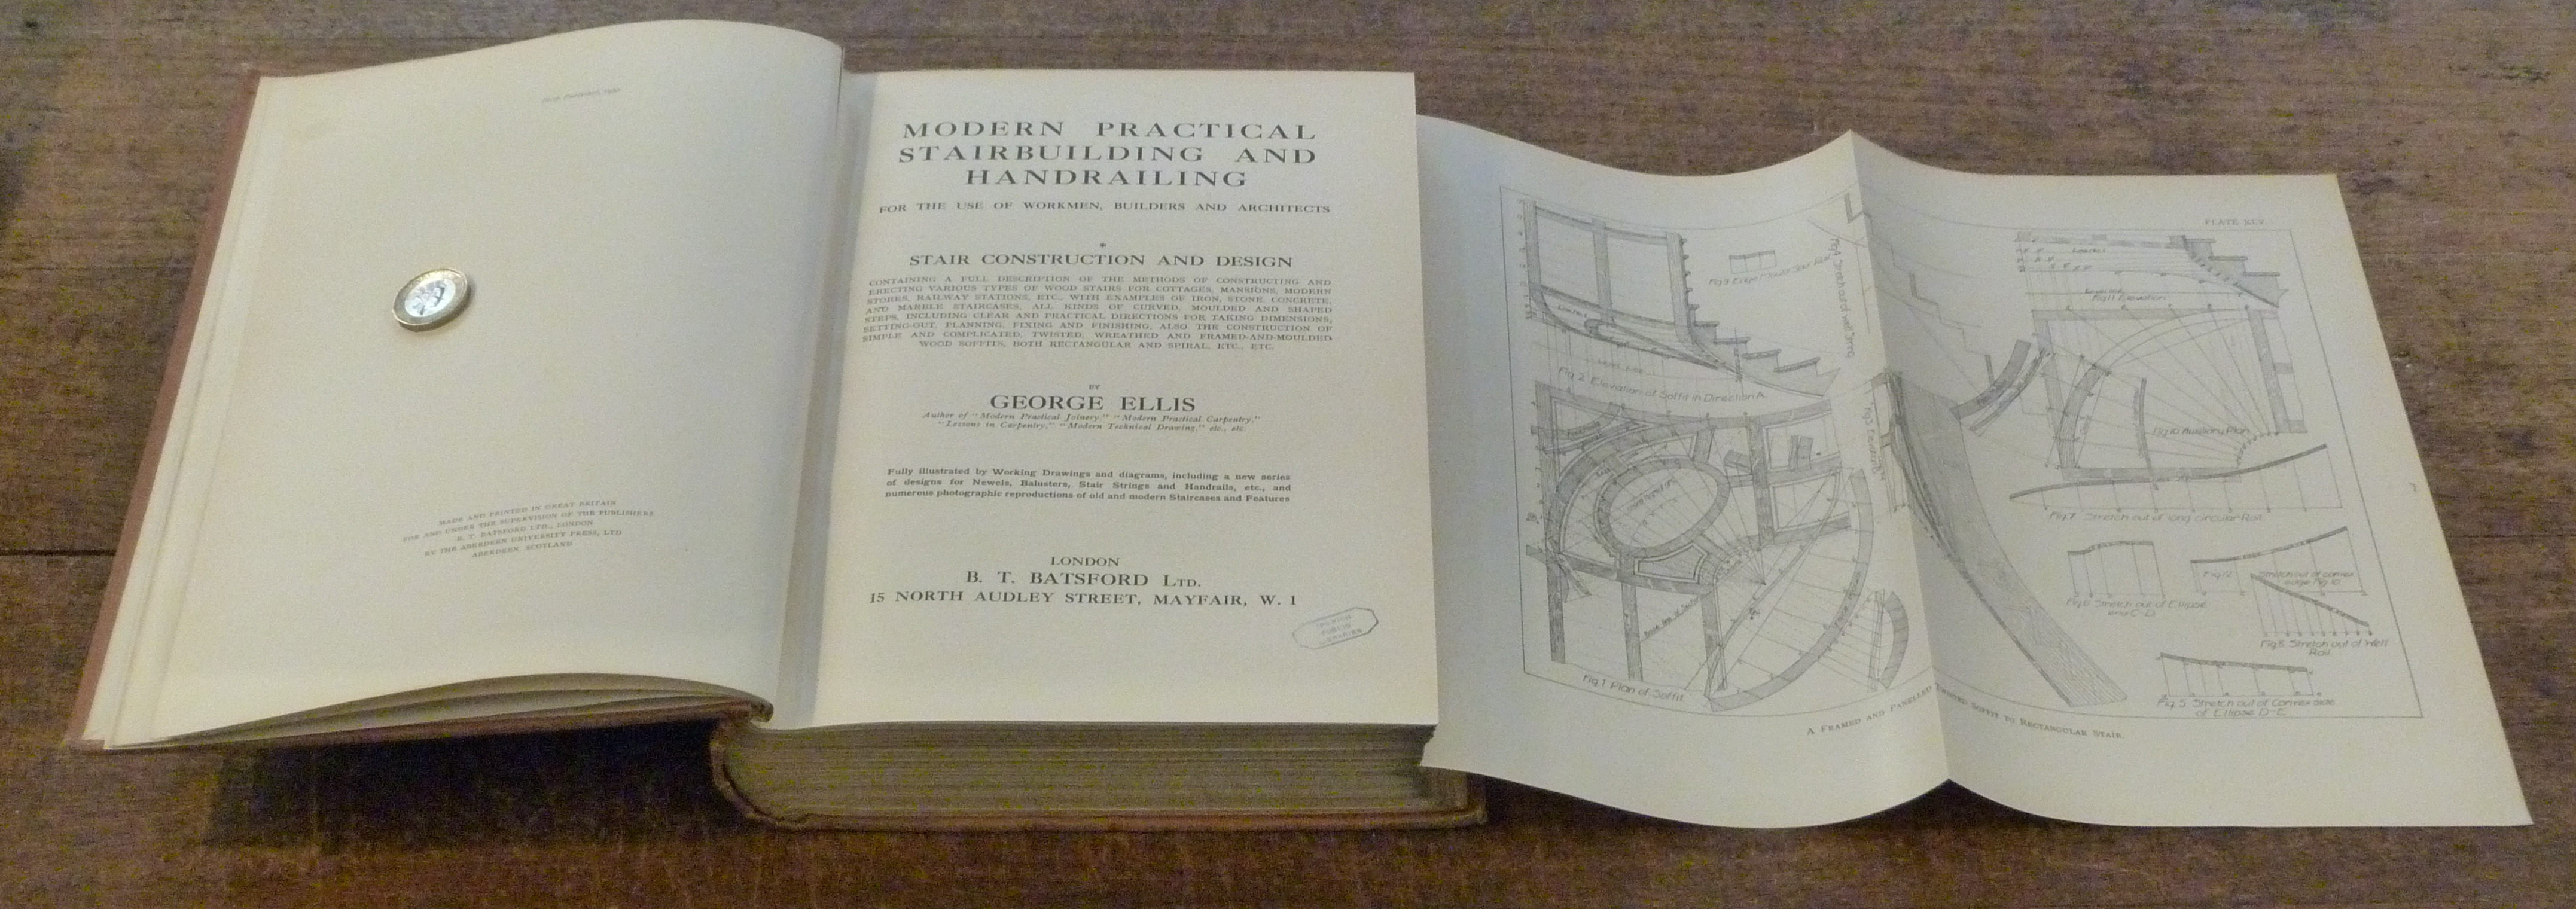 Image for Modern Practical Stairbuilding and Handrailing   for the Use of Workmen,  Builders and Architects (2 Vols in one)  I. Stair Construction and Design, II. Handrailing and Wreath Making TWO VOLS IN ONE .